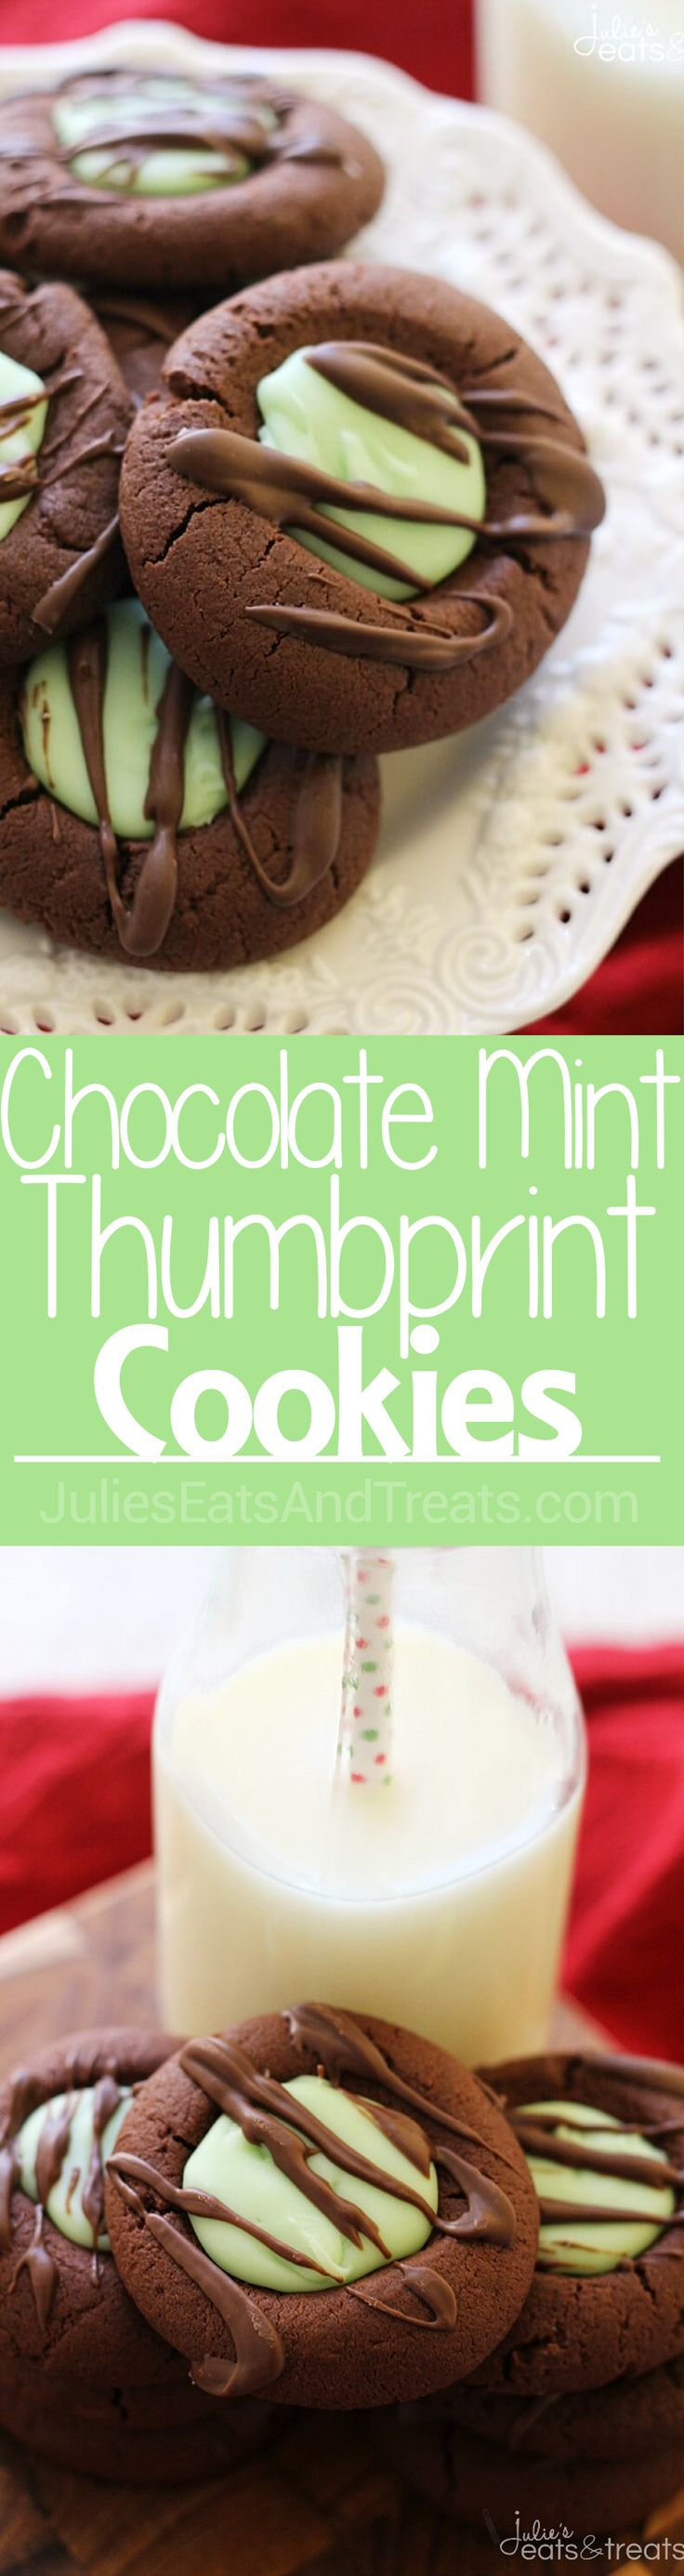 Chocolate Mint Fudge Thumbprint Cookies ~ Soft Chocolate Thumbprint Cookies Stuffed with Mint Fudge! via @julieseats